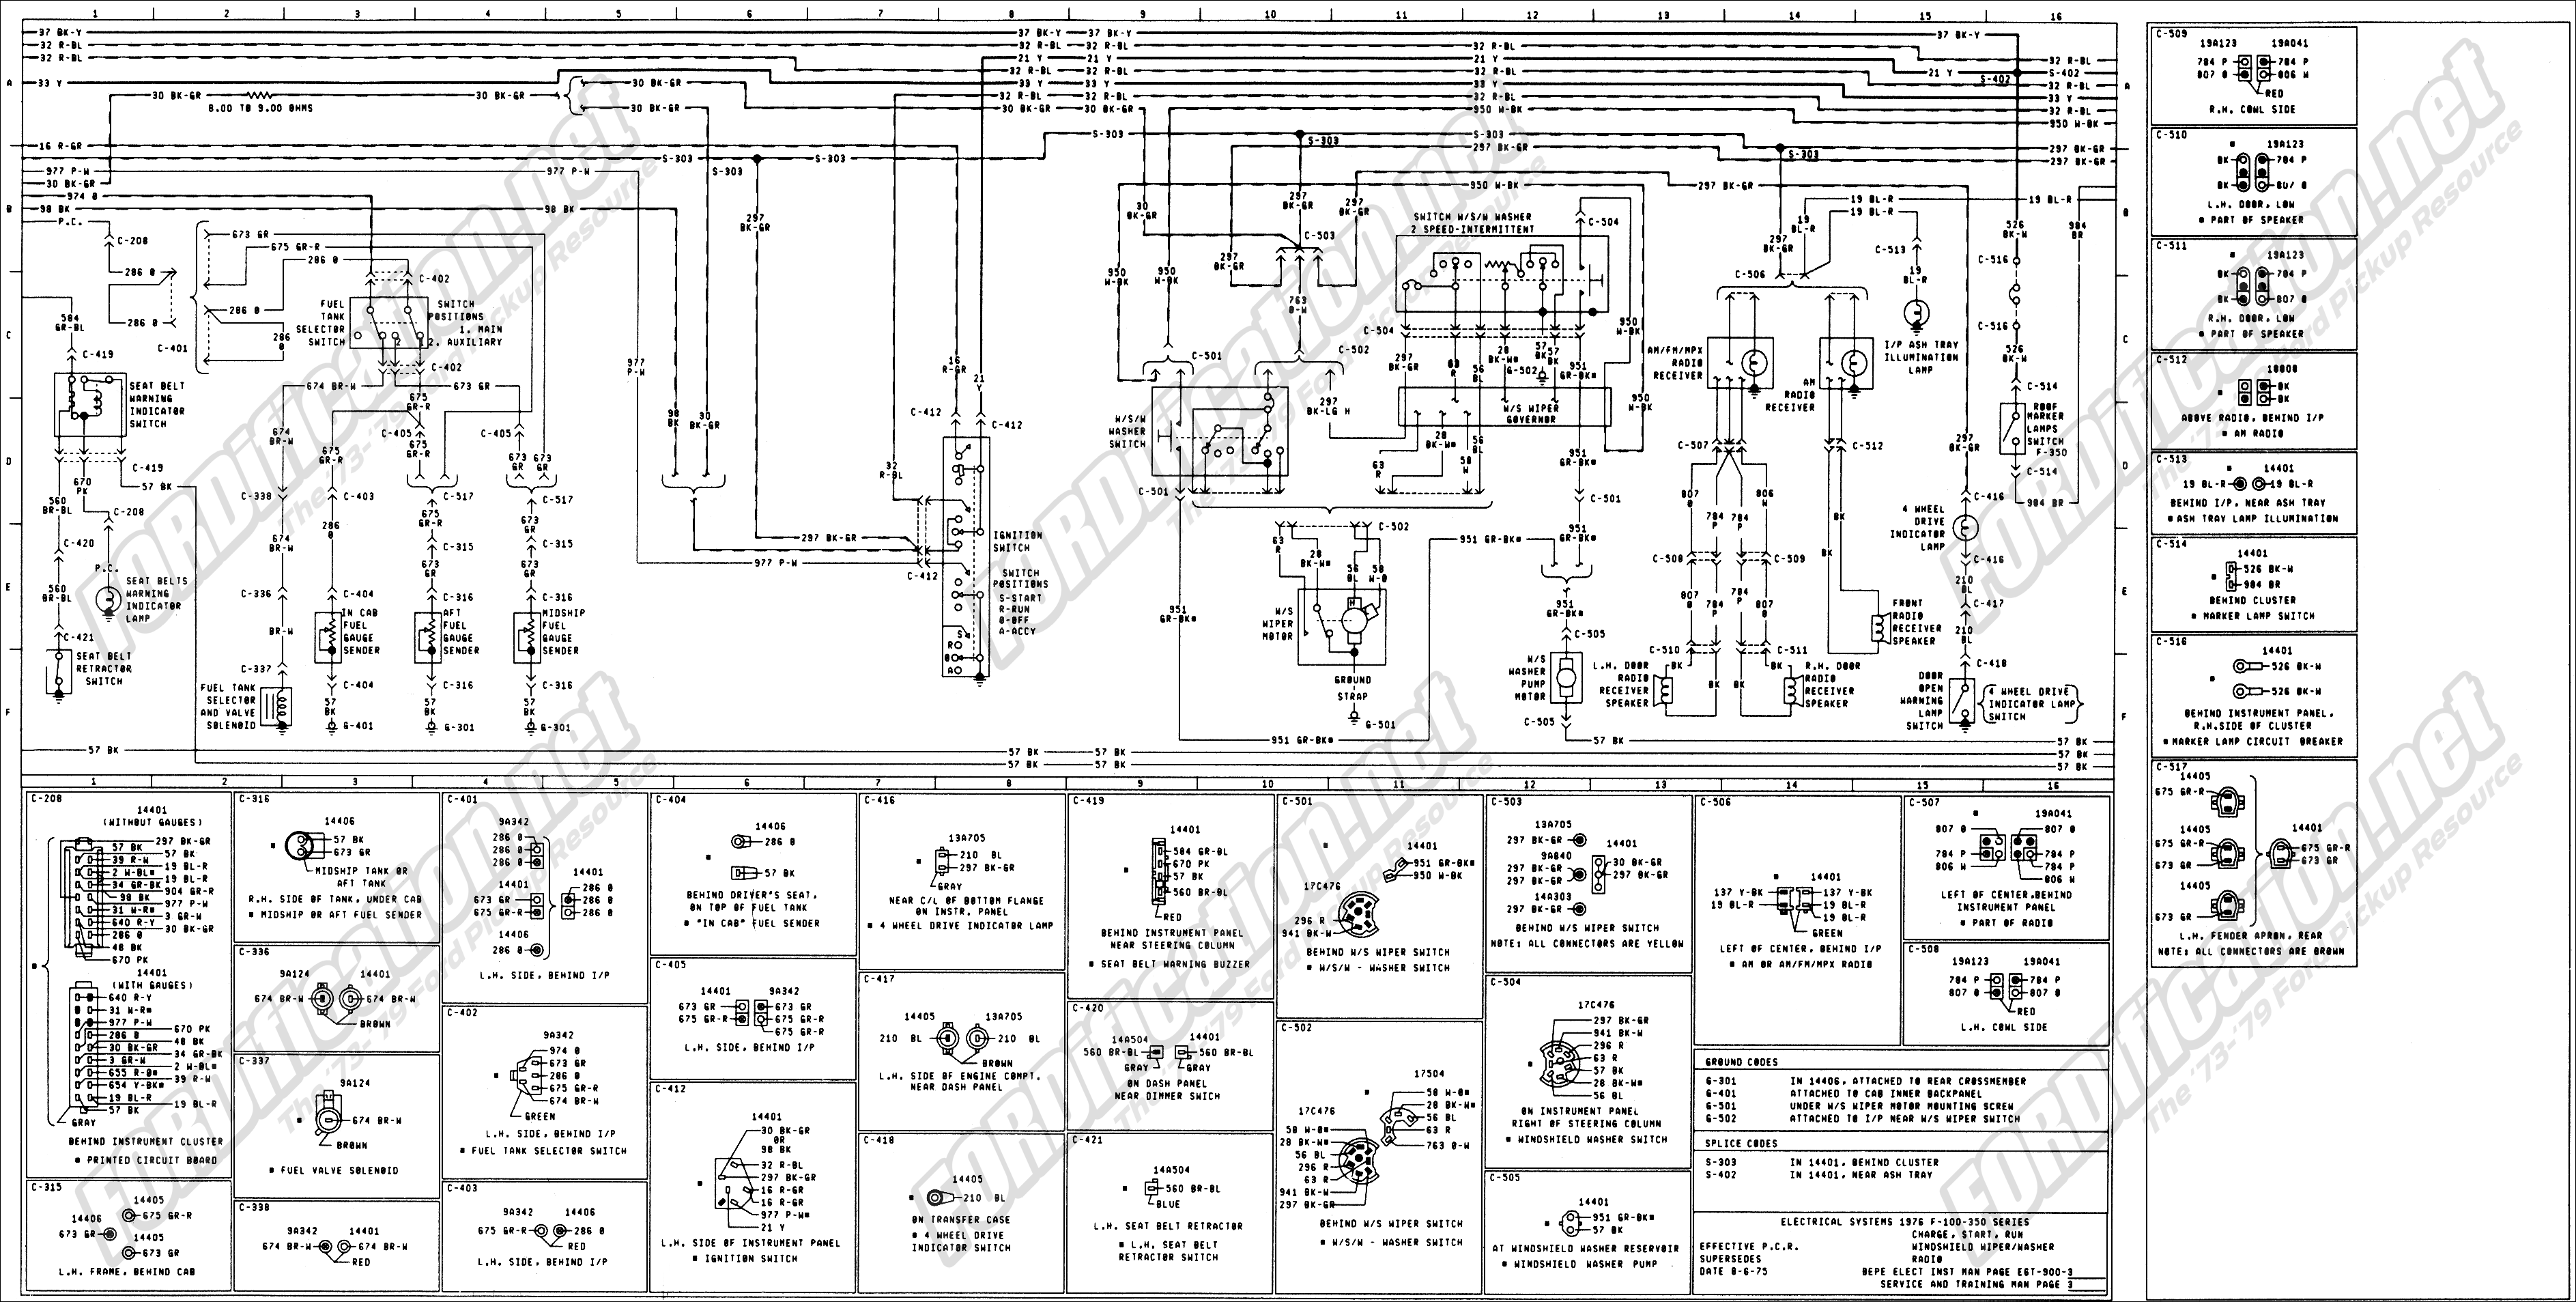 wiring_76master_3of9 ford ranger & bronco ii electrical diagrams at the ranger station 1979 ford truck fuse box diagram at aneh.co